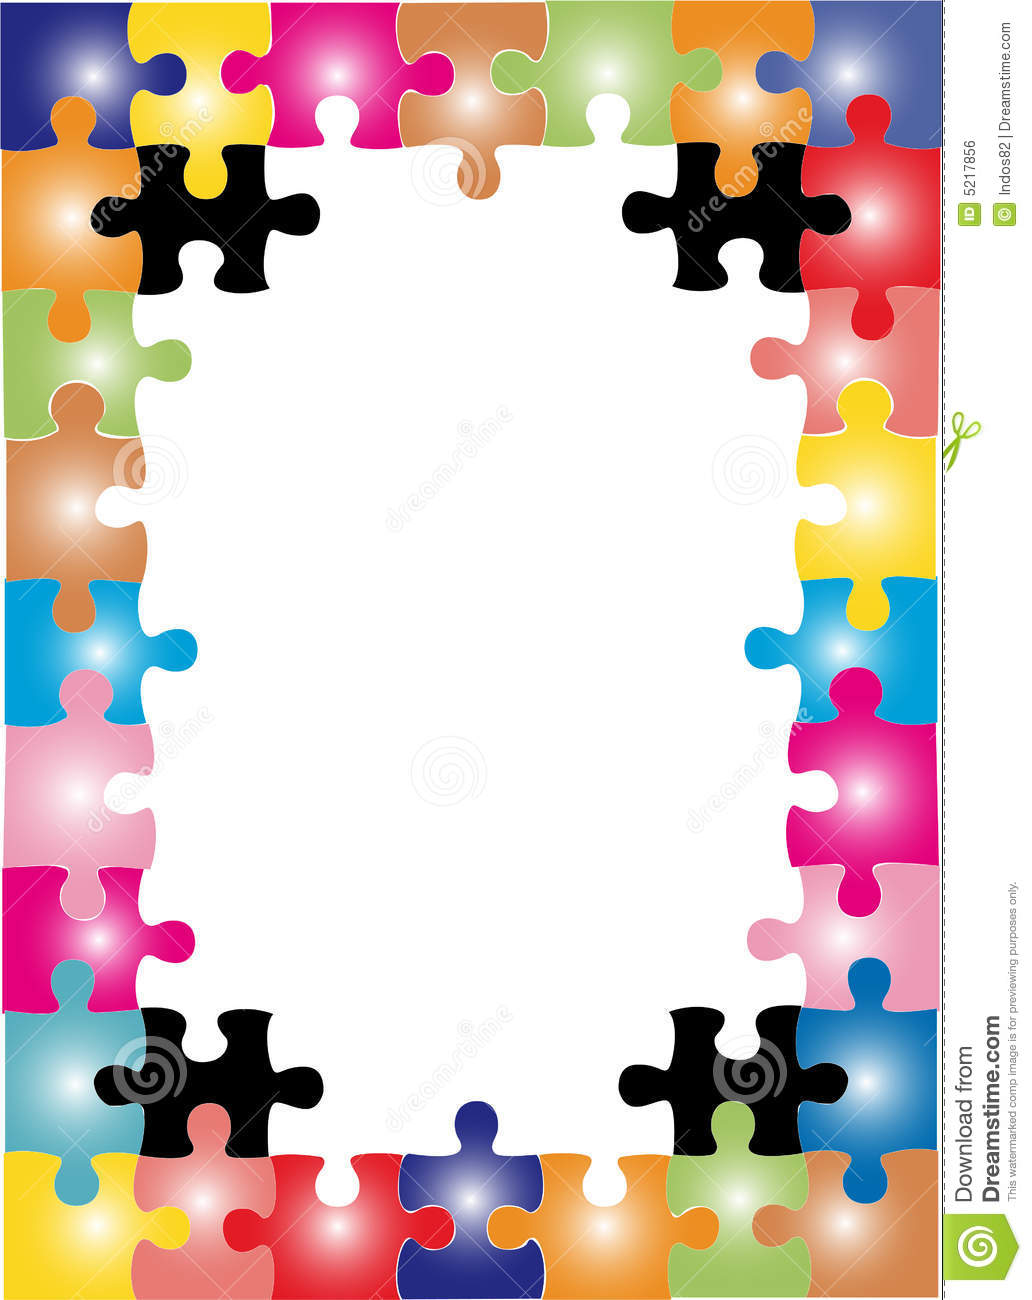 Puzzle frame stock vector. Illustration of connect, entertainment ...